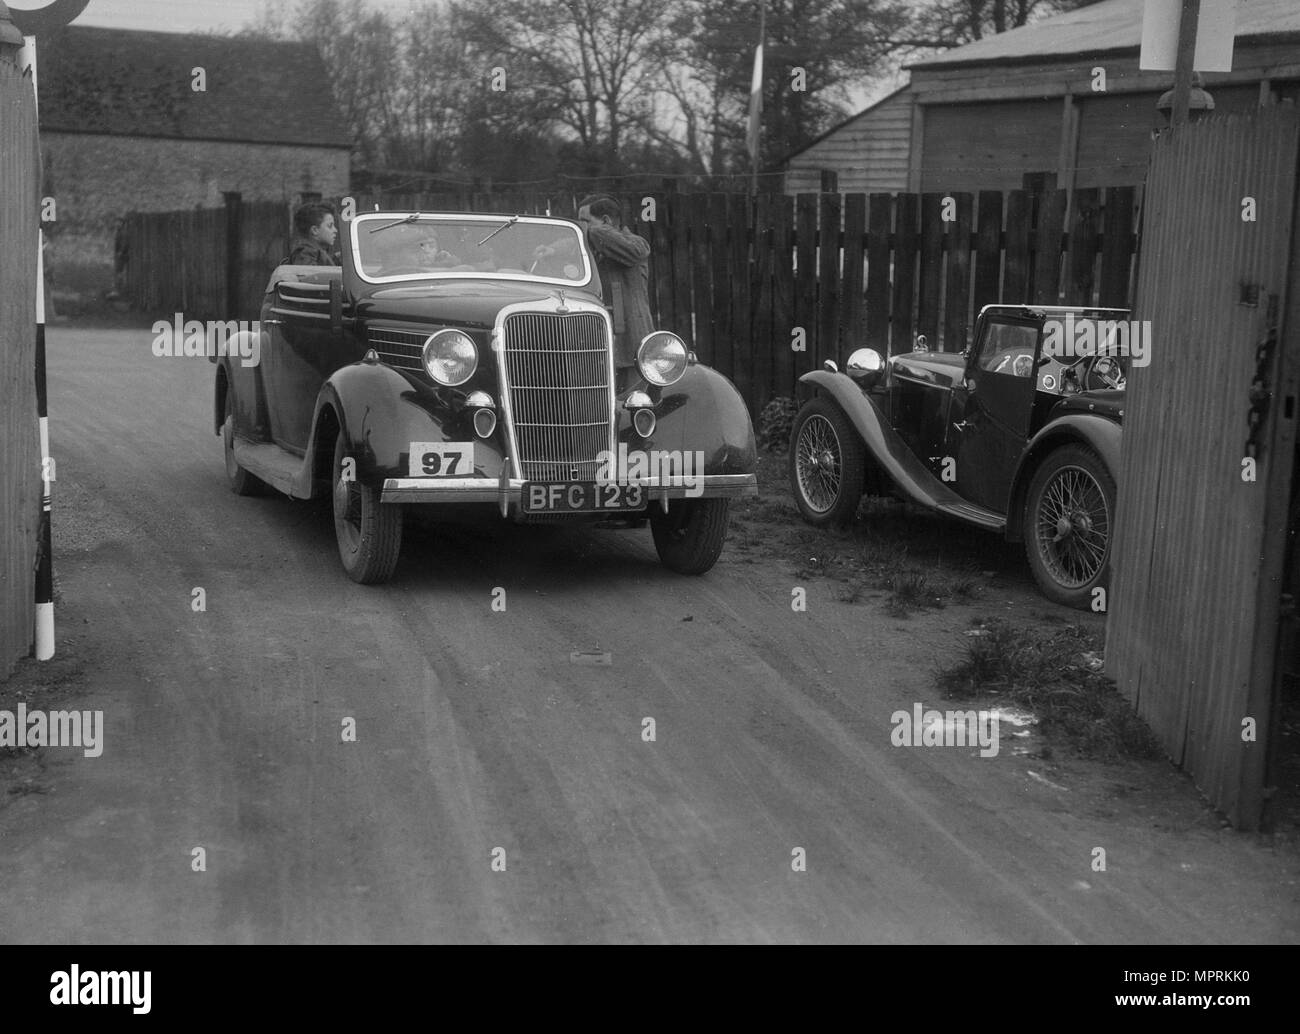 Ford V8 drophead and MG PA at a motoring trial, 1930s. Artist: Bill Brunell. - Stock Image